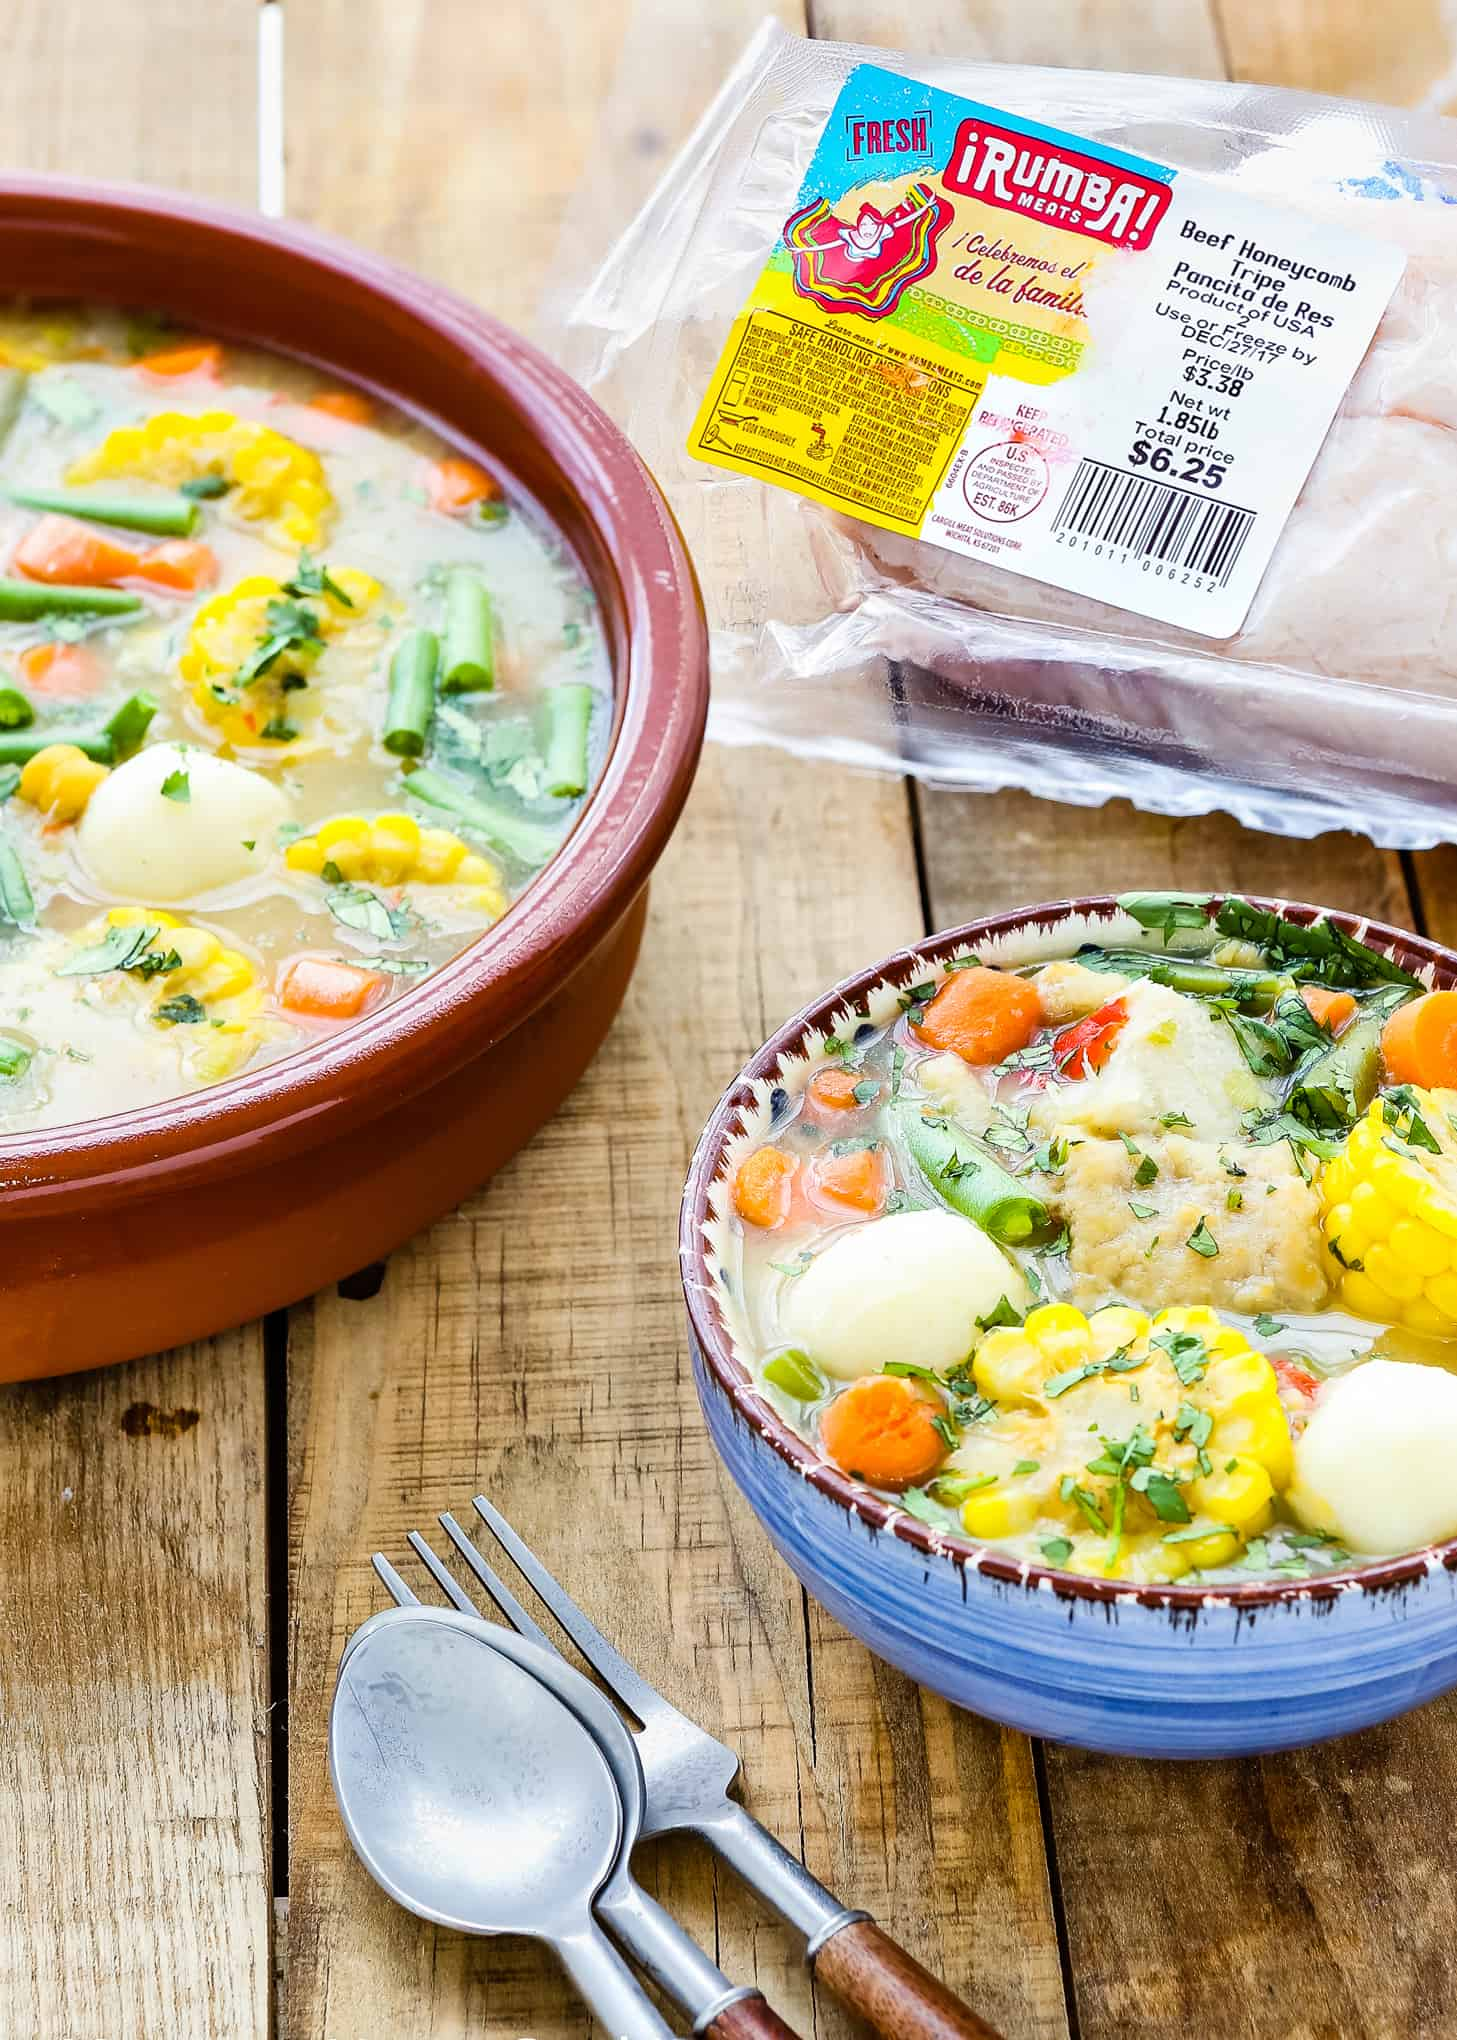 This Venezuelan Mondongo is easy to make and full of flavor. Made with beef tripe (panza), pork's feet (paticas de cochino) and lots of vegetables, this tripe stew will be a pleasant surprise for your palate. Be adventurous and give it a try! https://mommyshomecooking.com